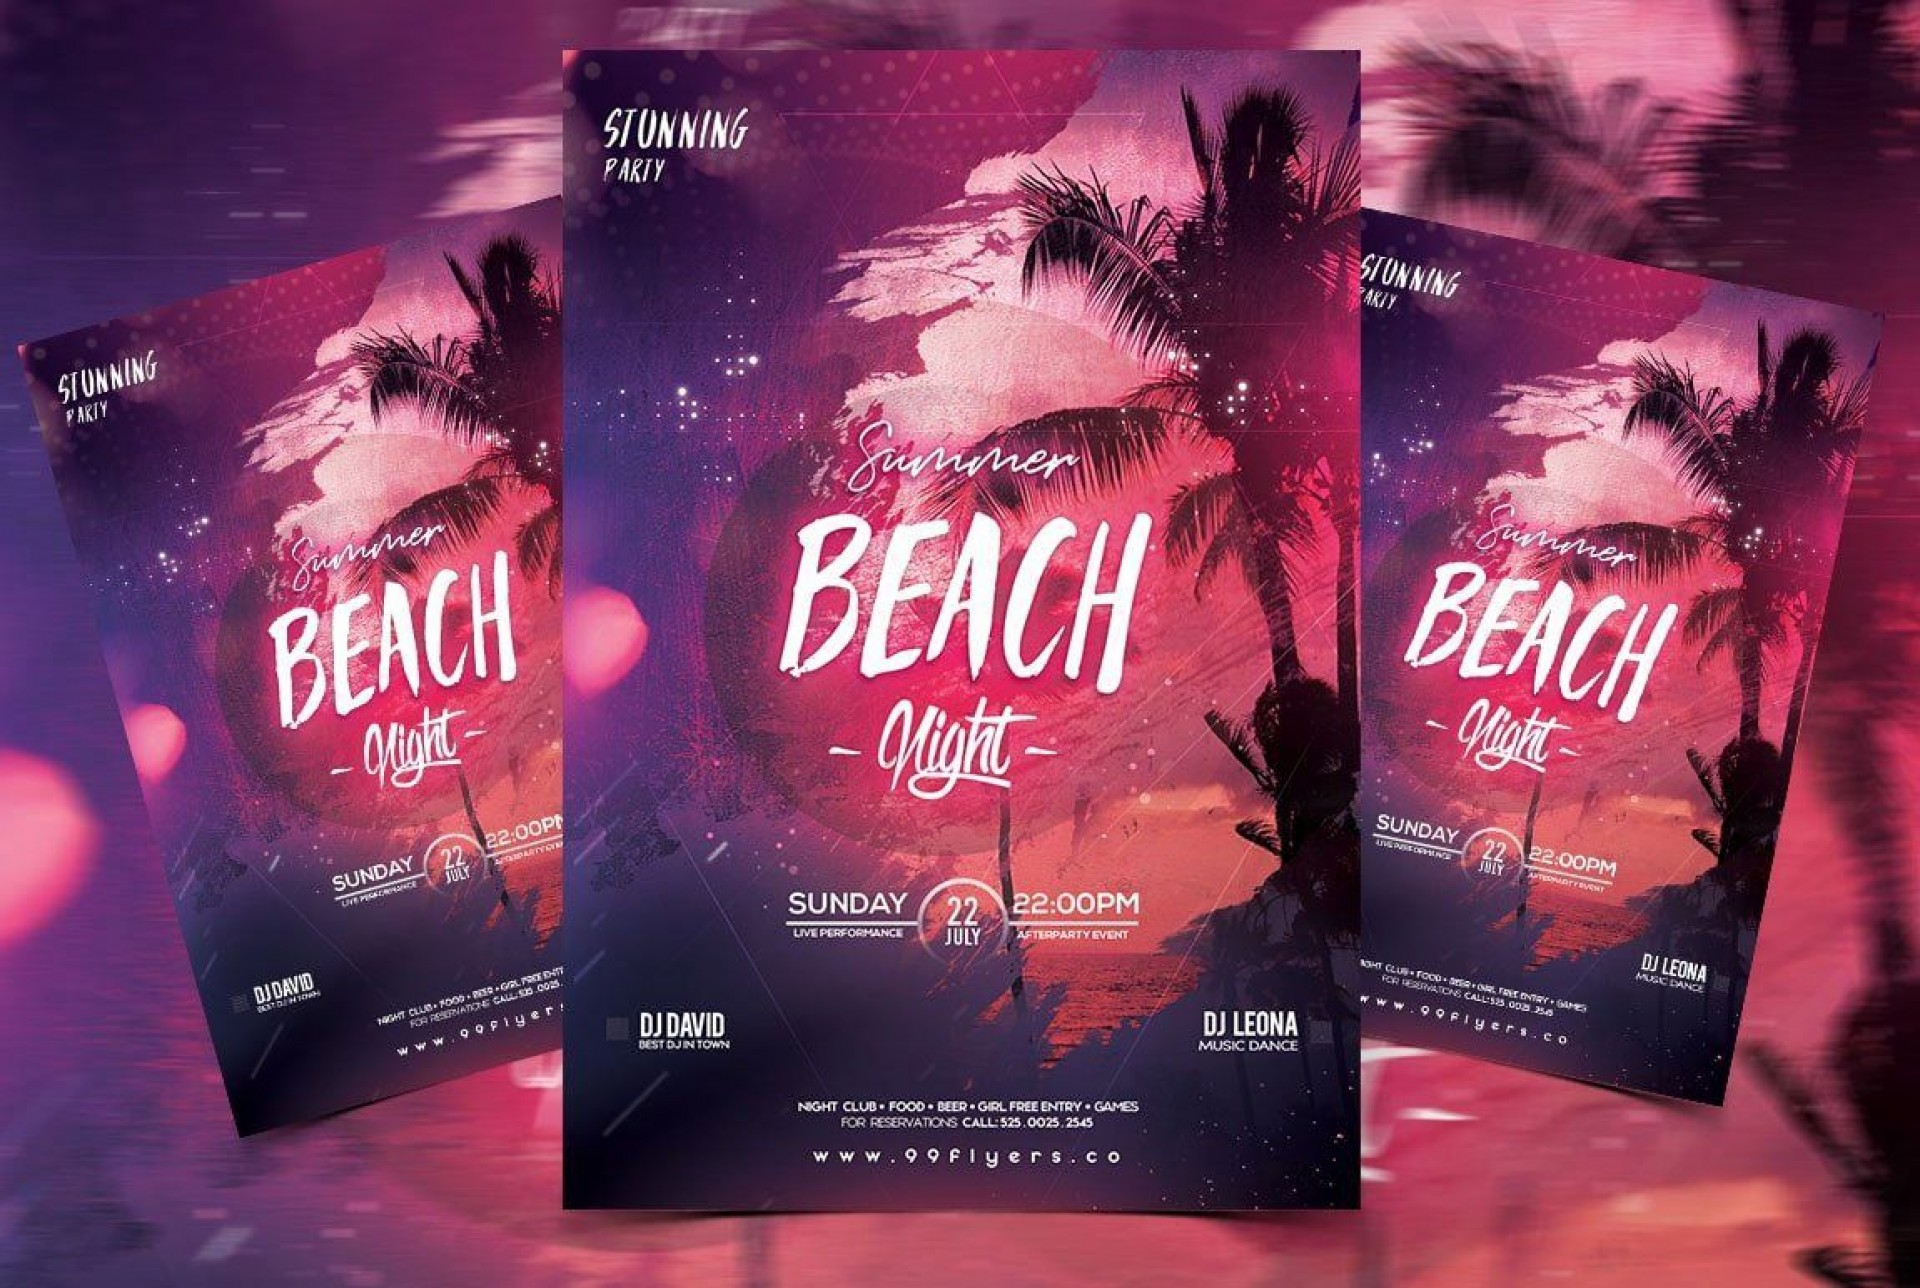 005 Sensational Free Party Flyer Template For Mac Concept 1920